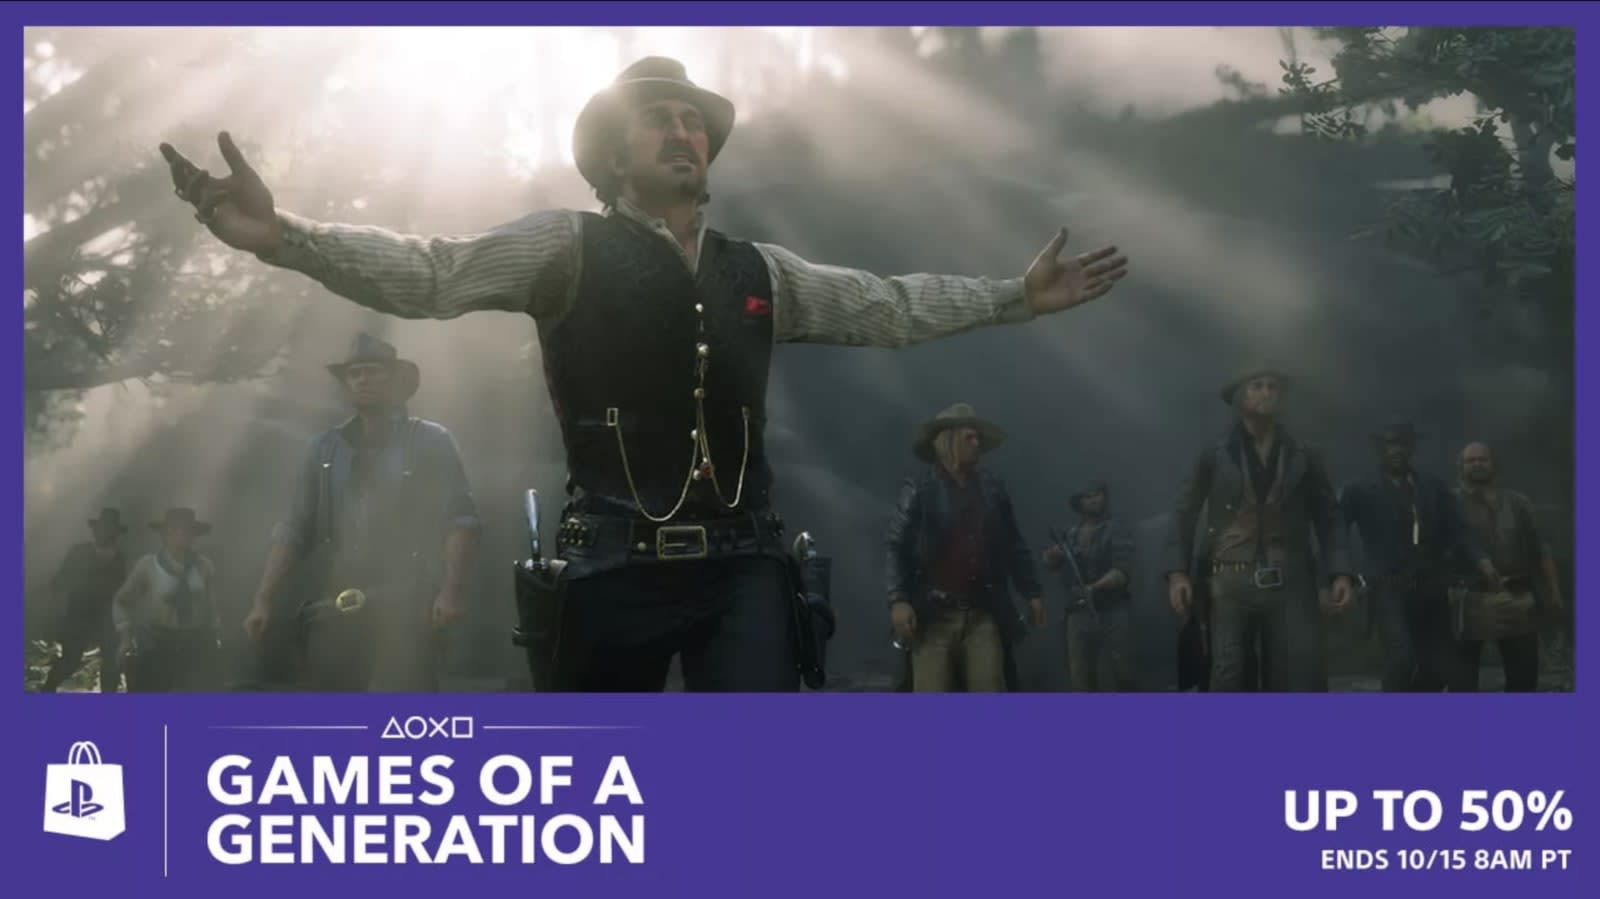 Sony puts PlayStation's 'Games of a Generation' on sale